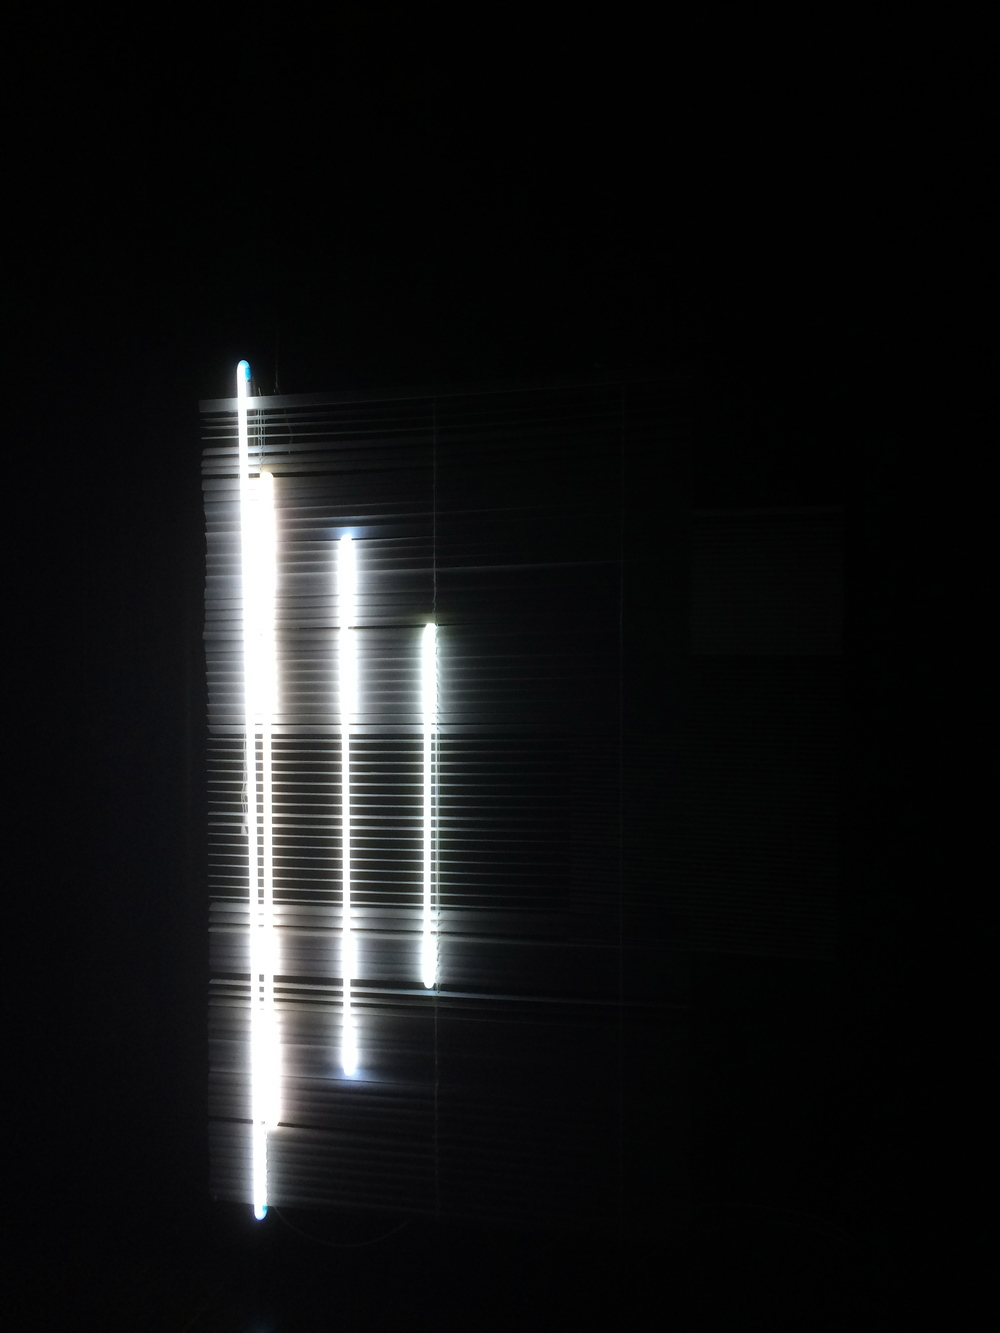 Blind 5/7,  neon light on vinyl blind, 2015